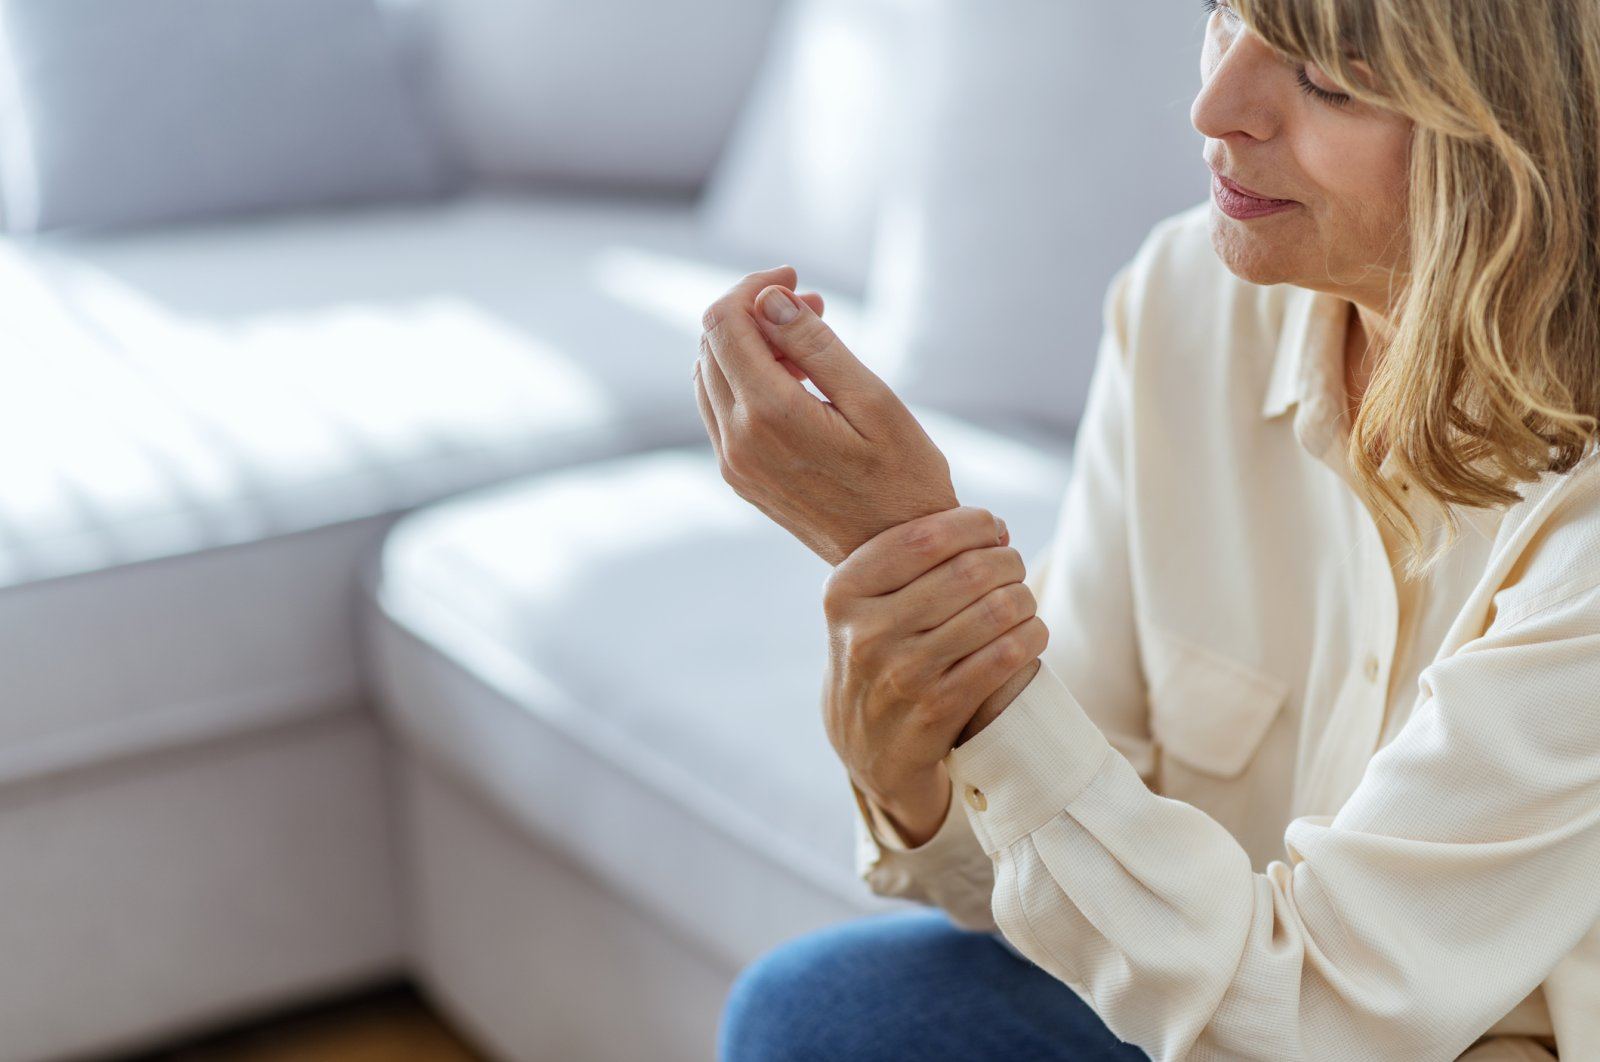 Women's pain is often ignored or serially misdiagnosed. (iStock Photo)